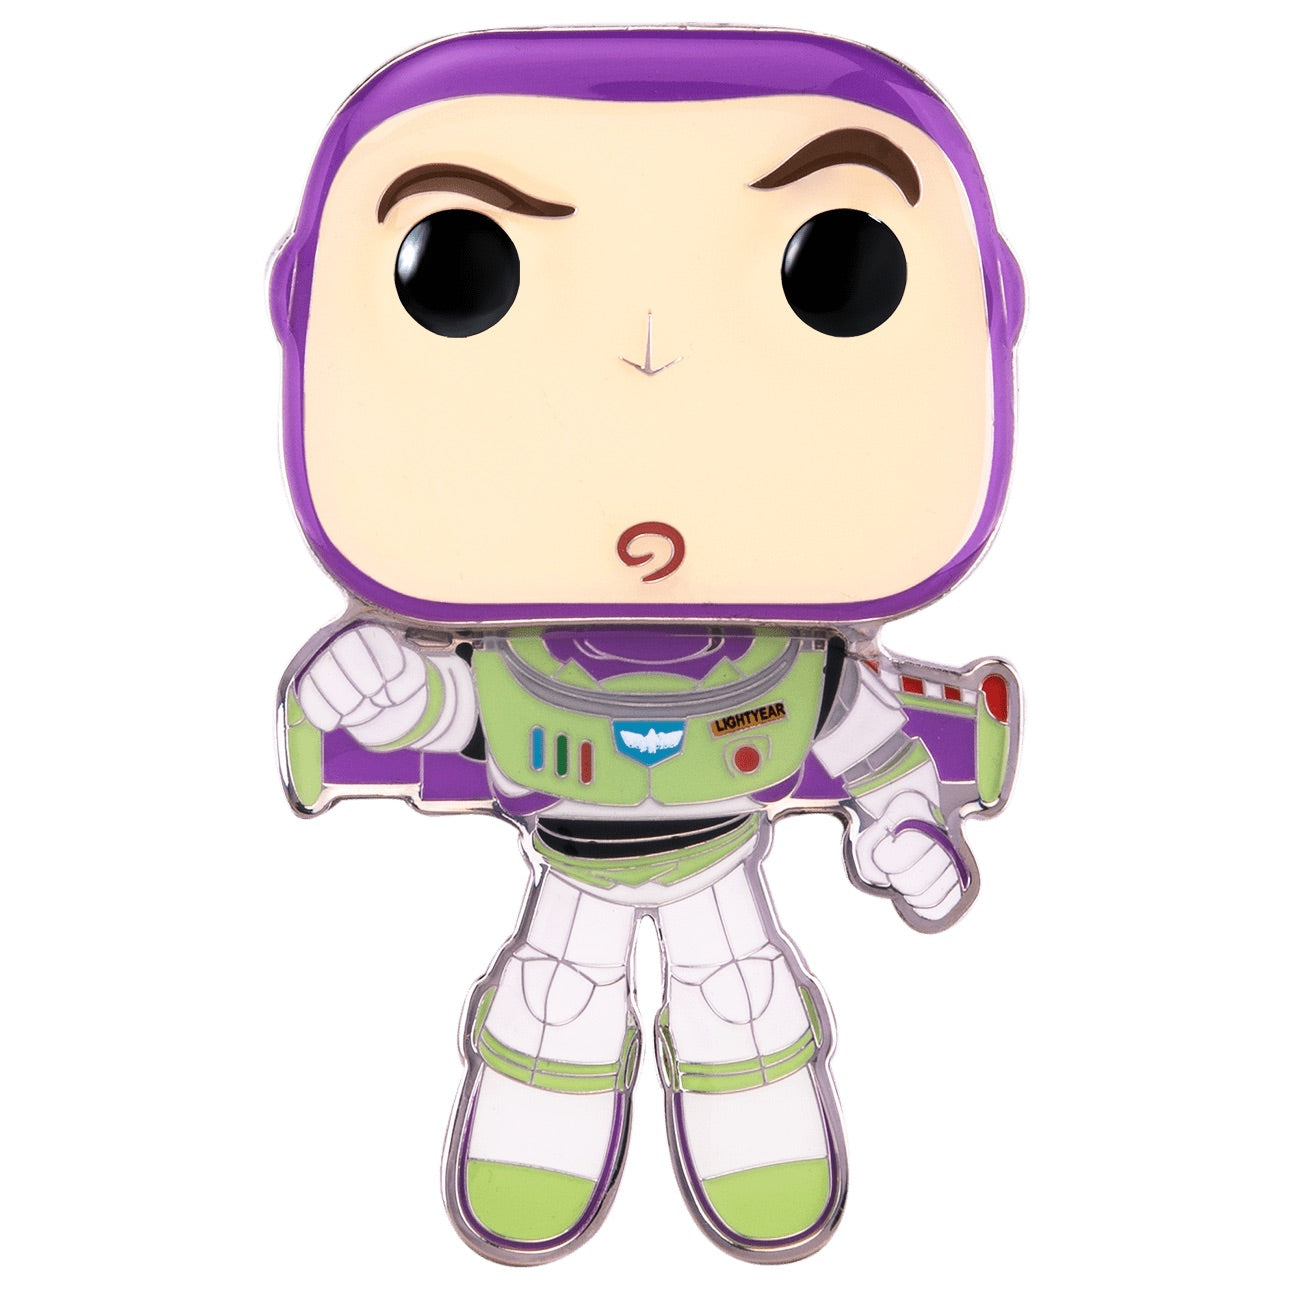 Disney Pixar Buzz Lightyear Large Enamel Pin